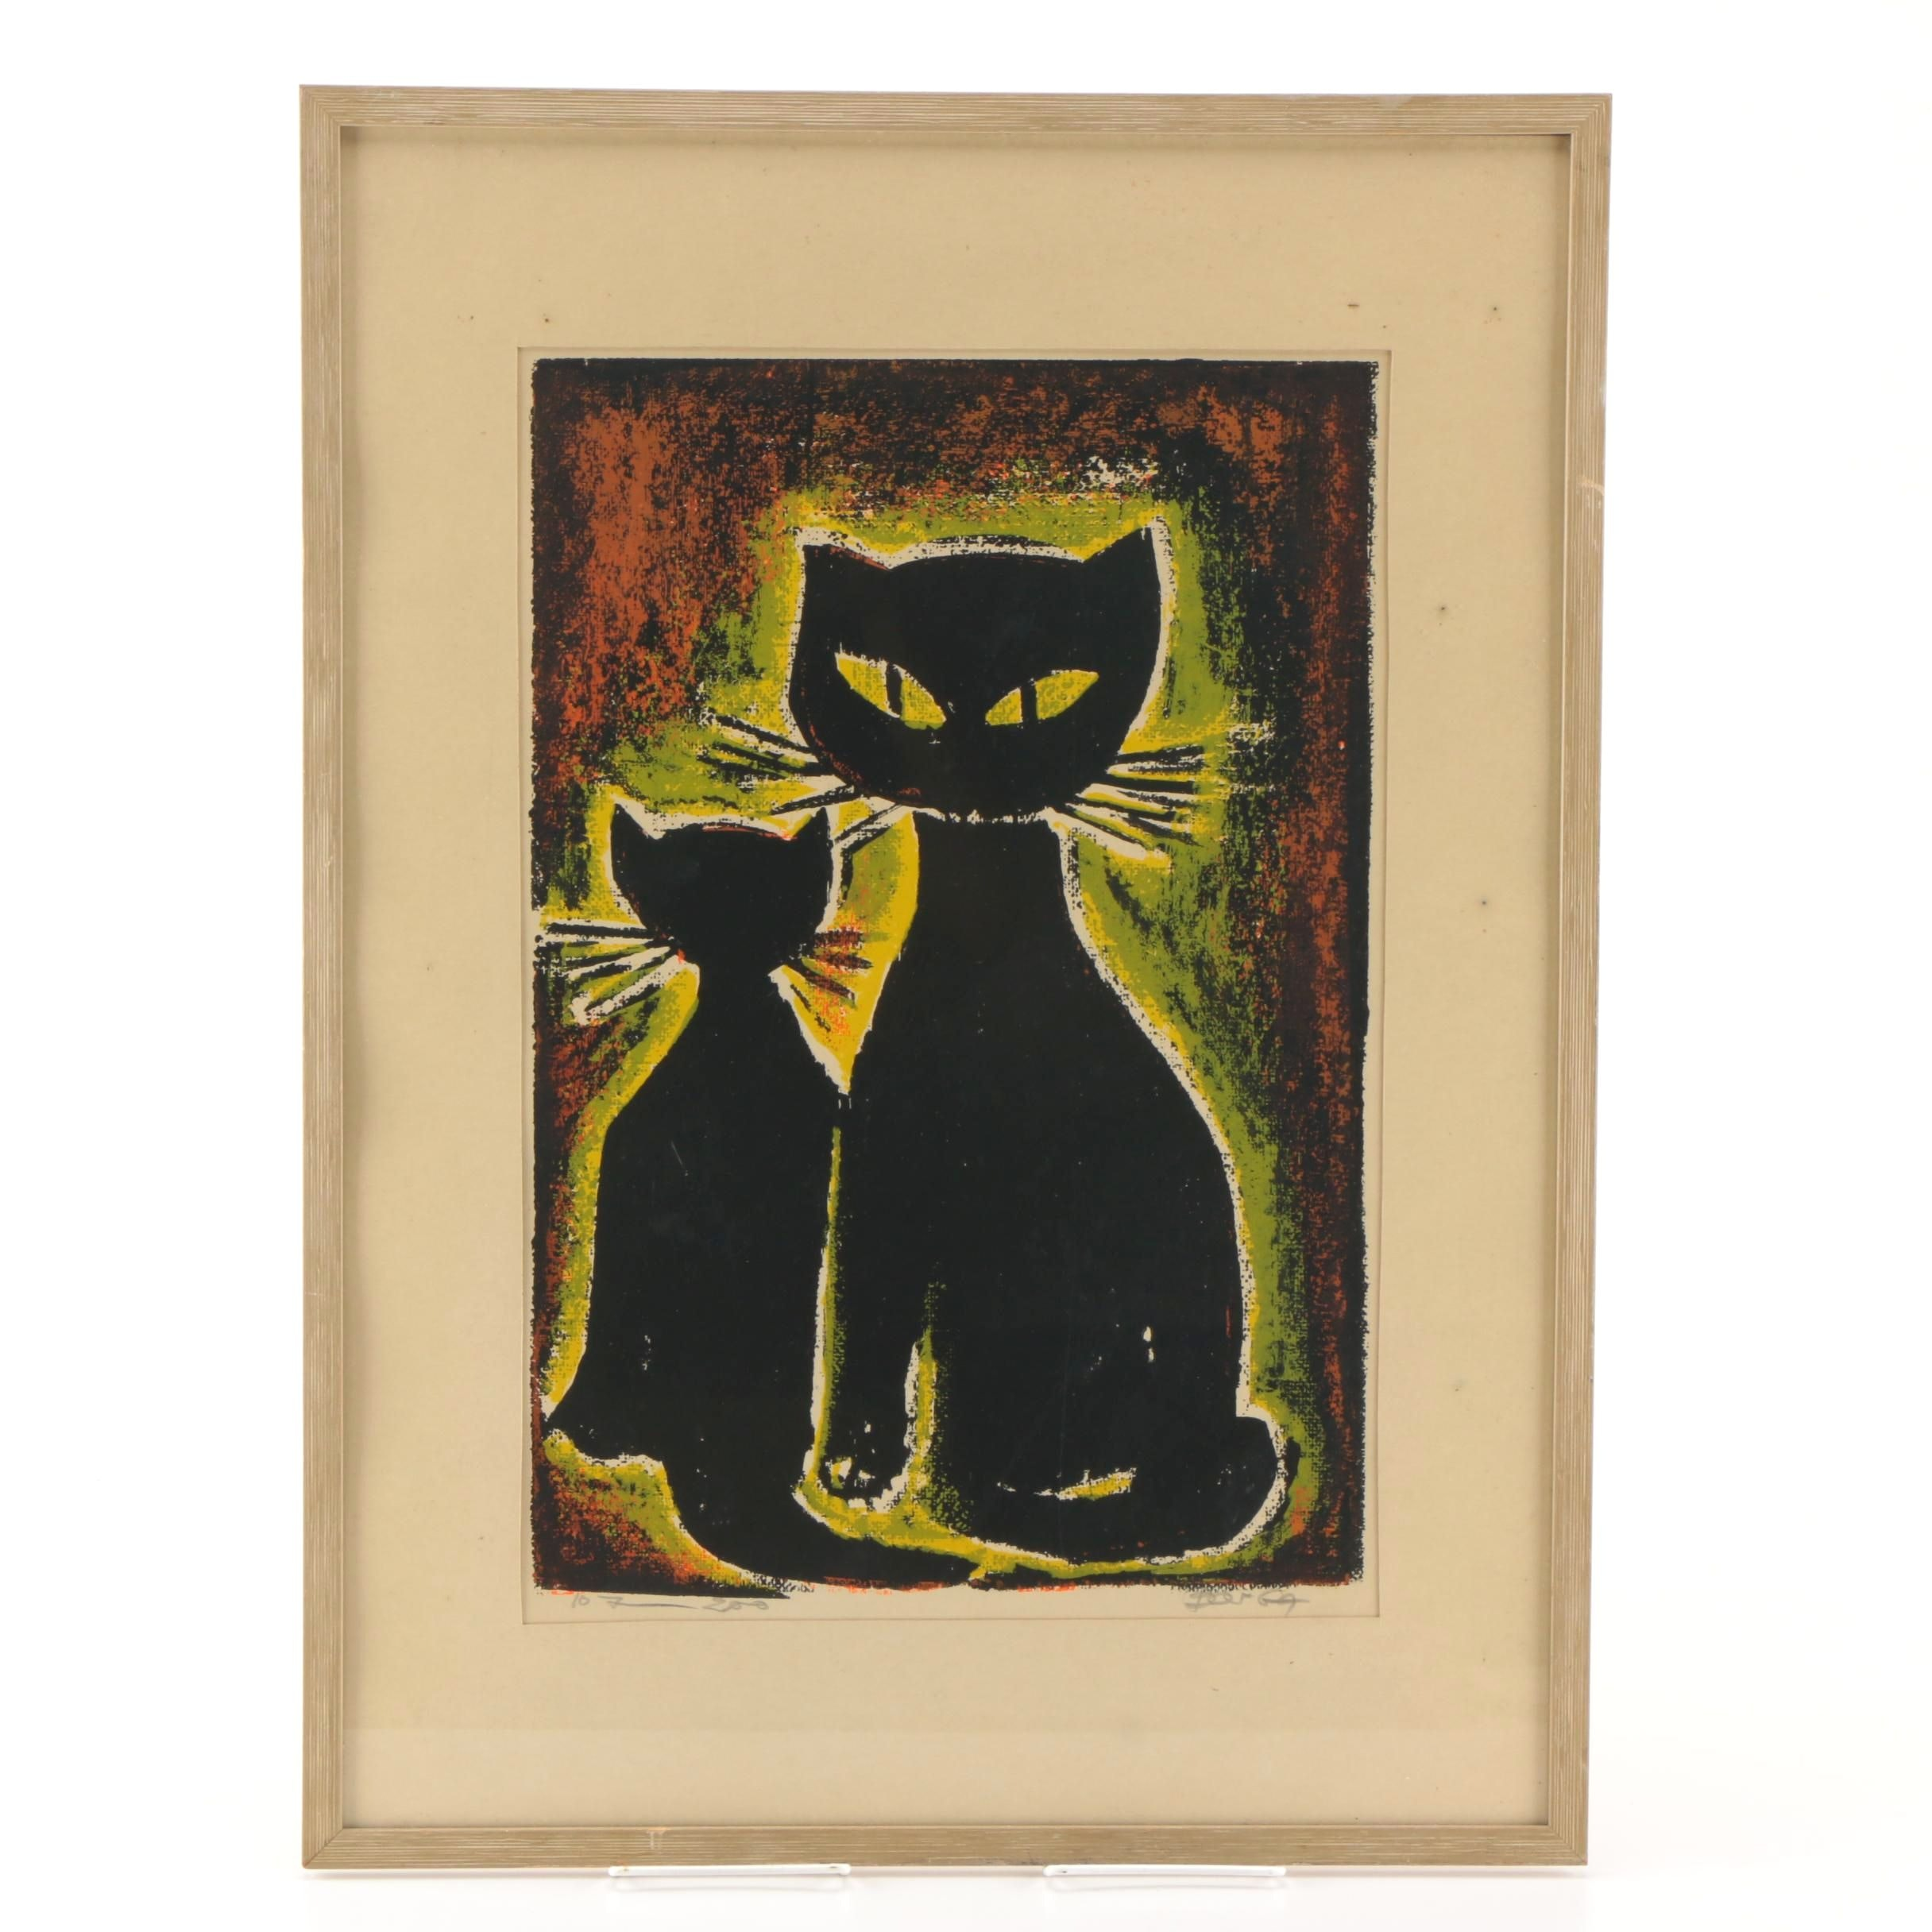 Limited Edition Serigraph on Paper of Two Cats